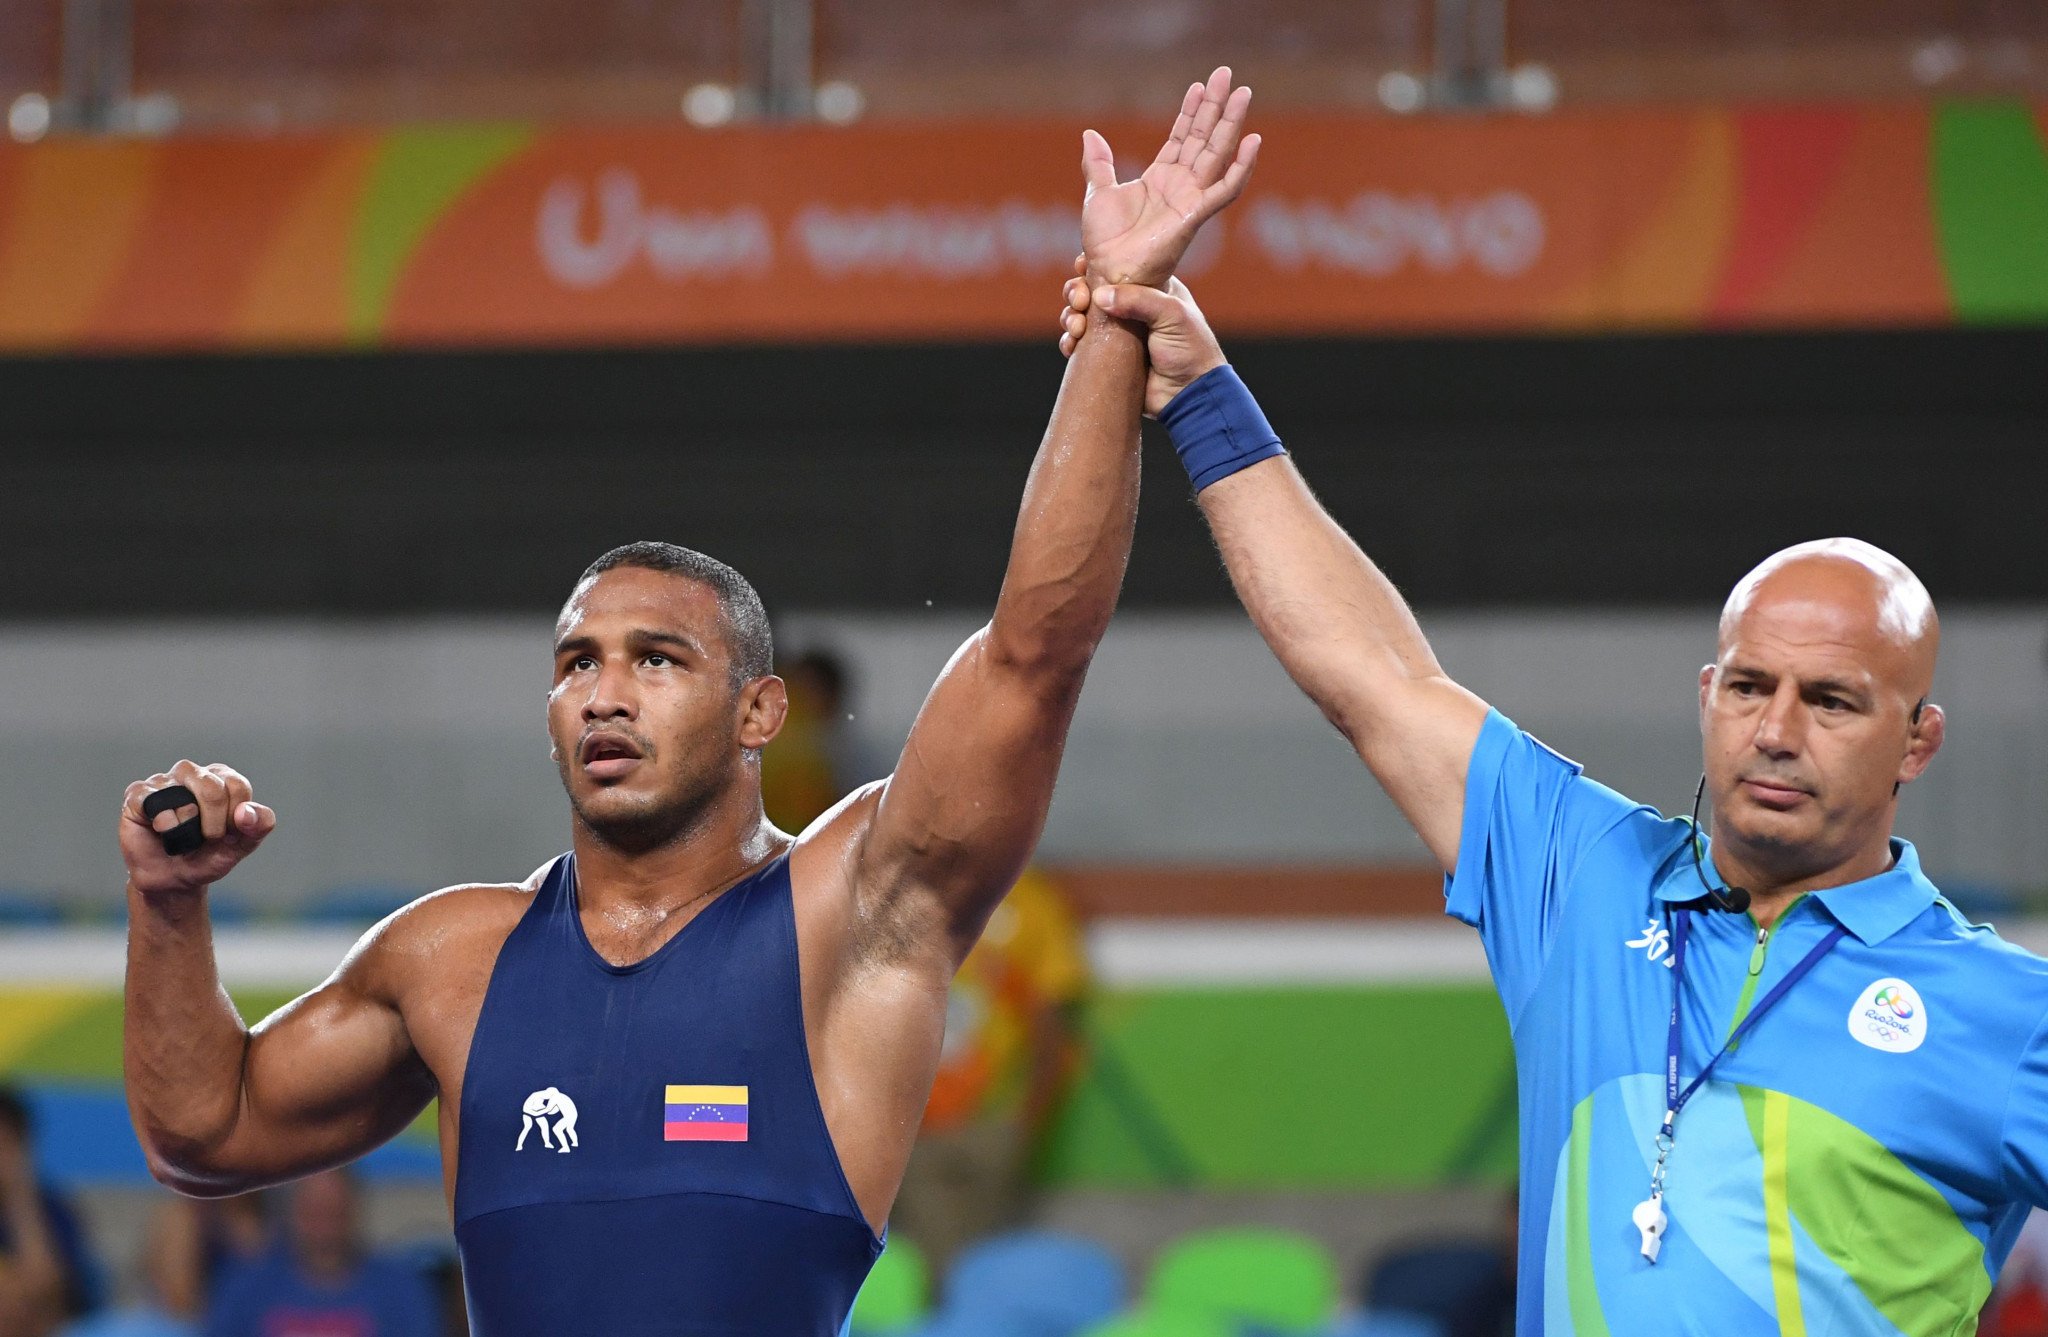 Venezuela suspended by United World Wrestling